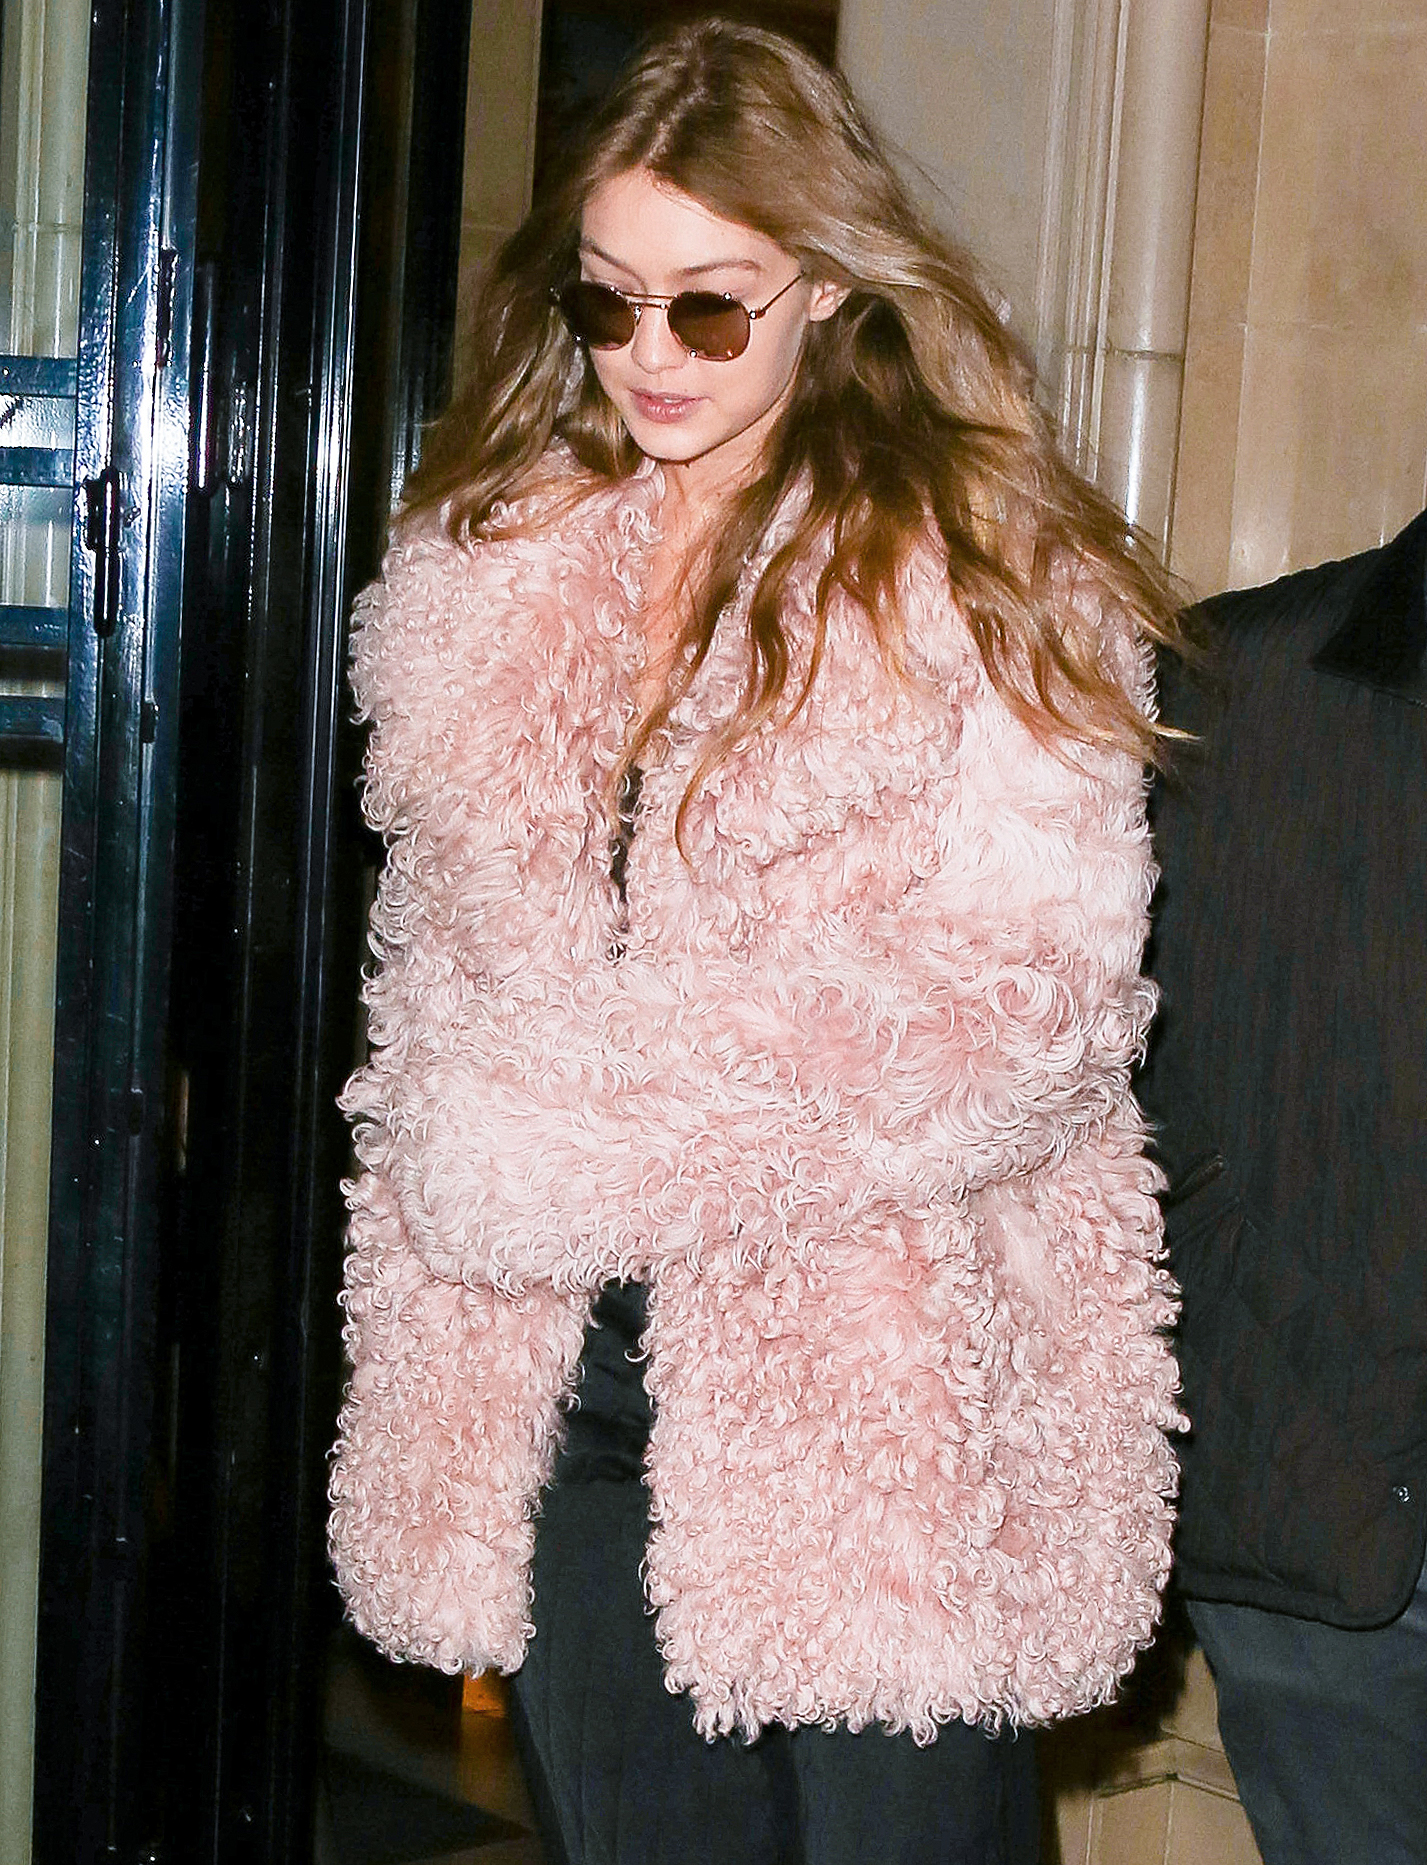 Gigi Hadid exits the George V hotel in pink and black during PFW